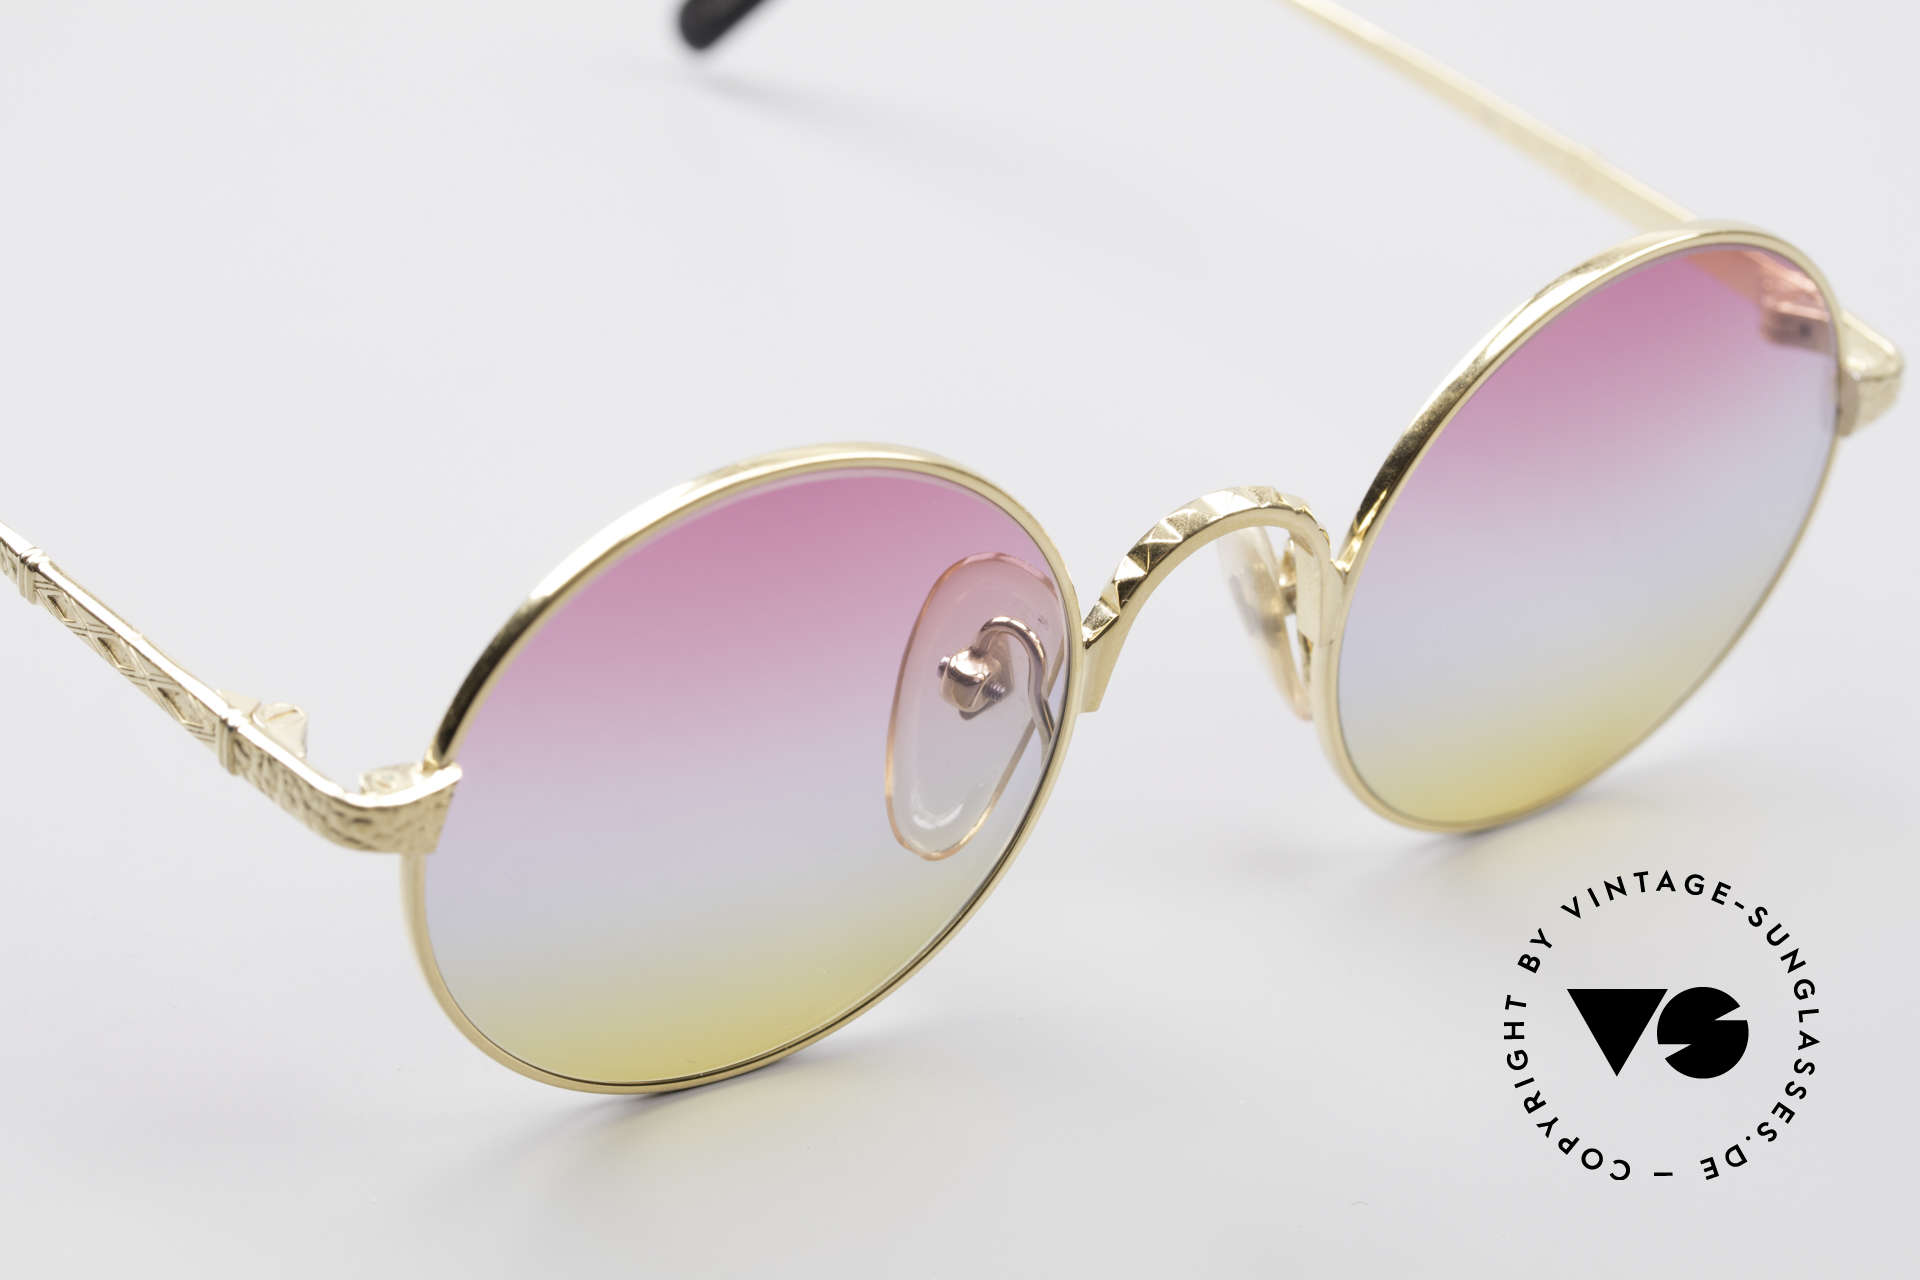 Jean Paul Gaultier 55-9671 Gold Plated Round Frame, NO RETRO shades, but an old 90s JPG Original, Made for Men and Women